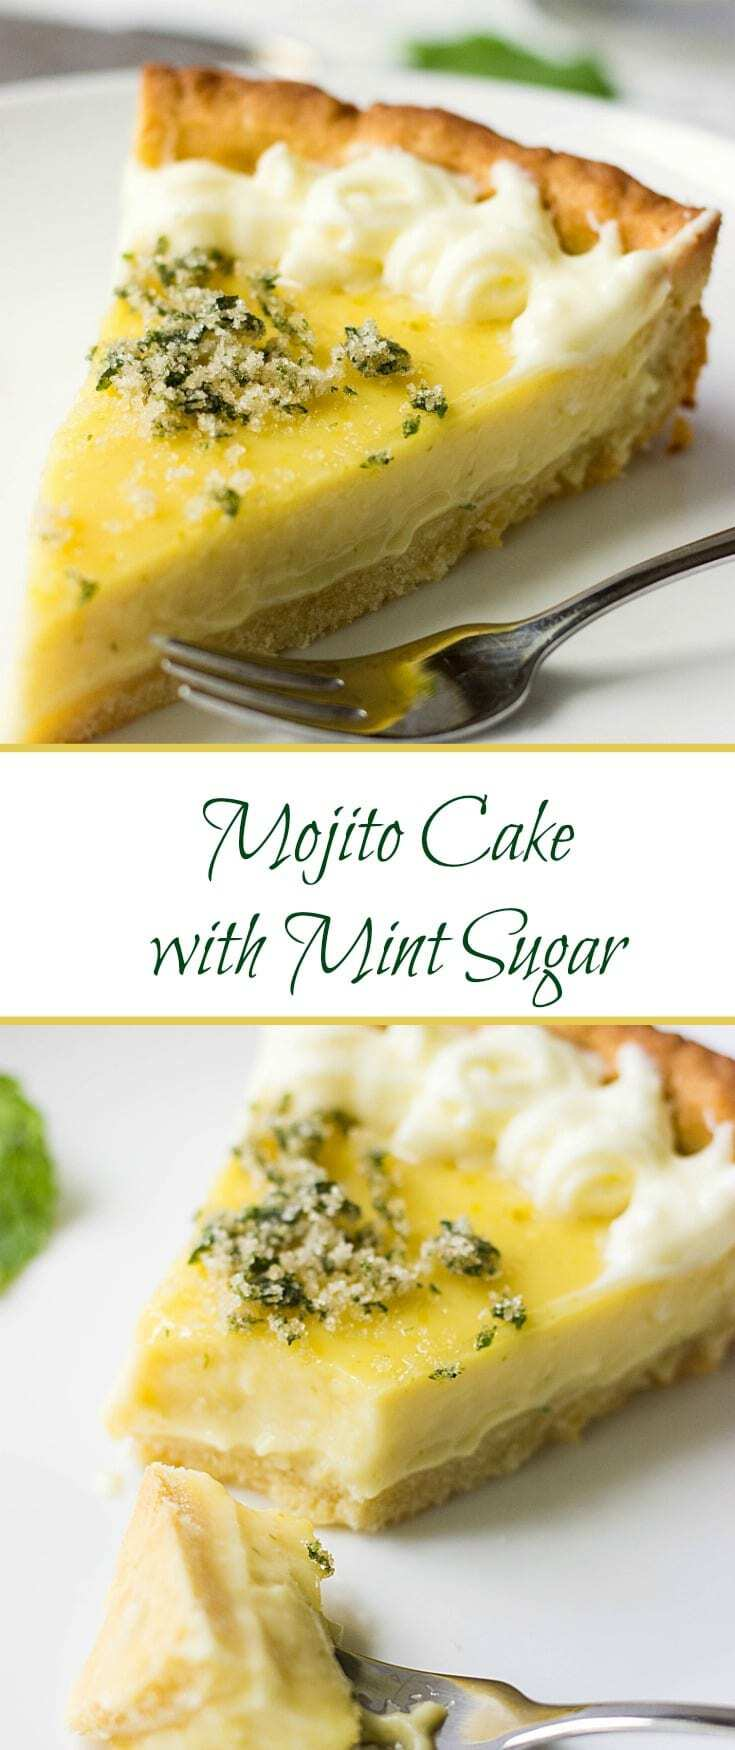 This mouthwatering and scrumptious Mojito cake with Mint Sugar has enough citrusy zing to make you fall in love with this easy dessert.